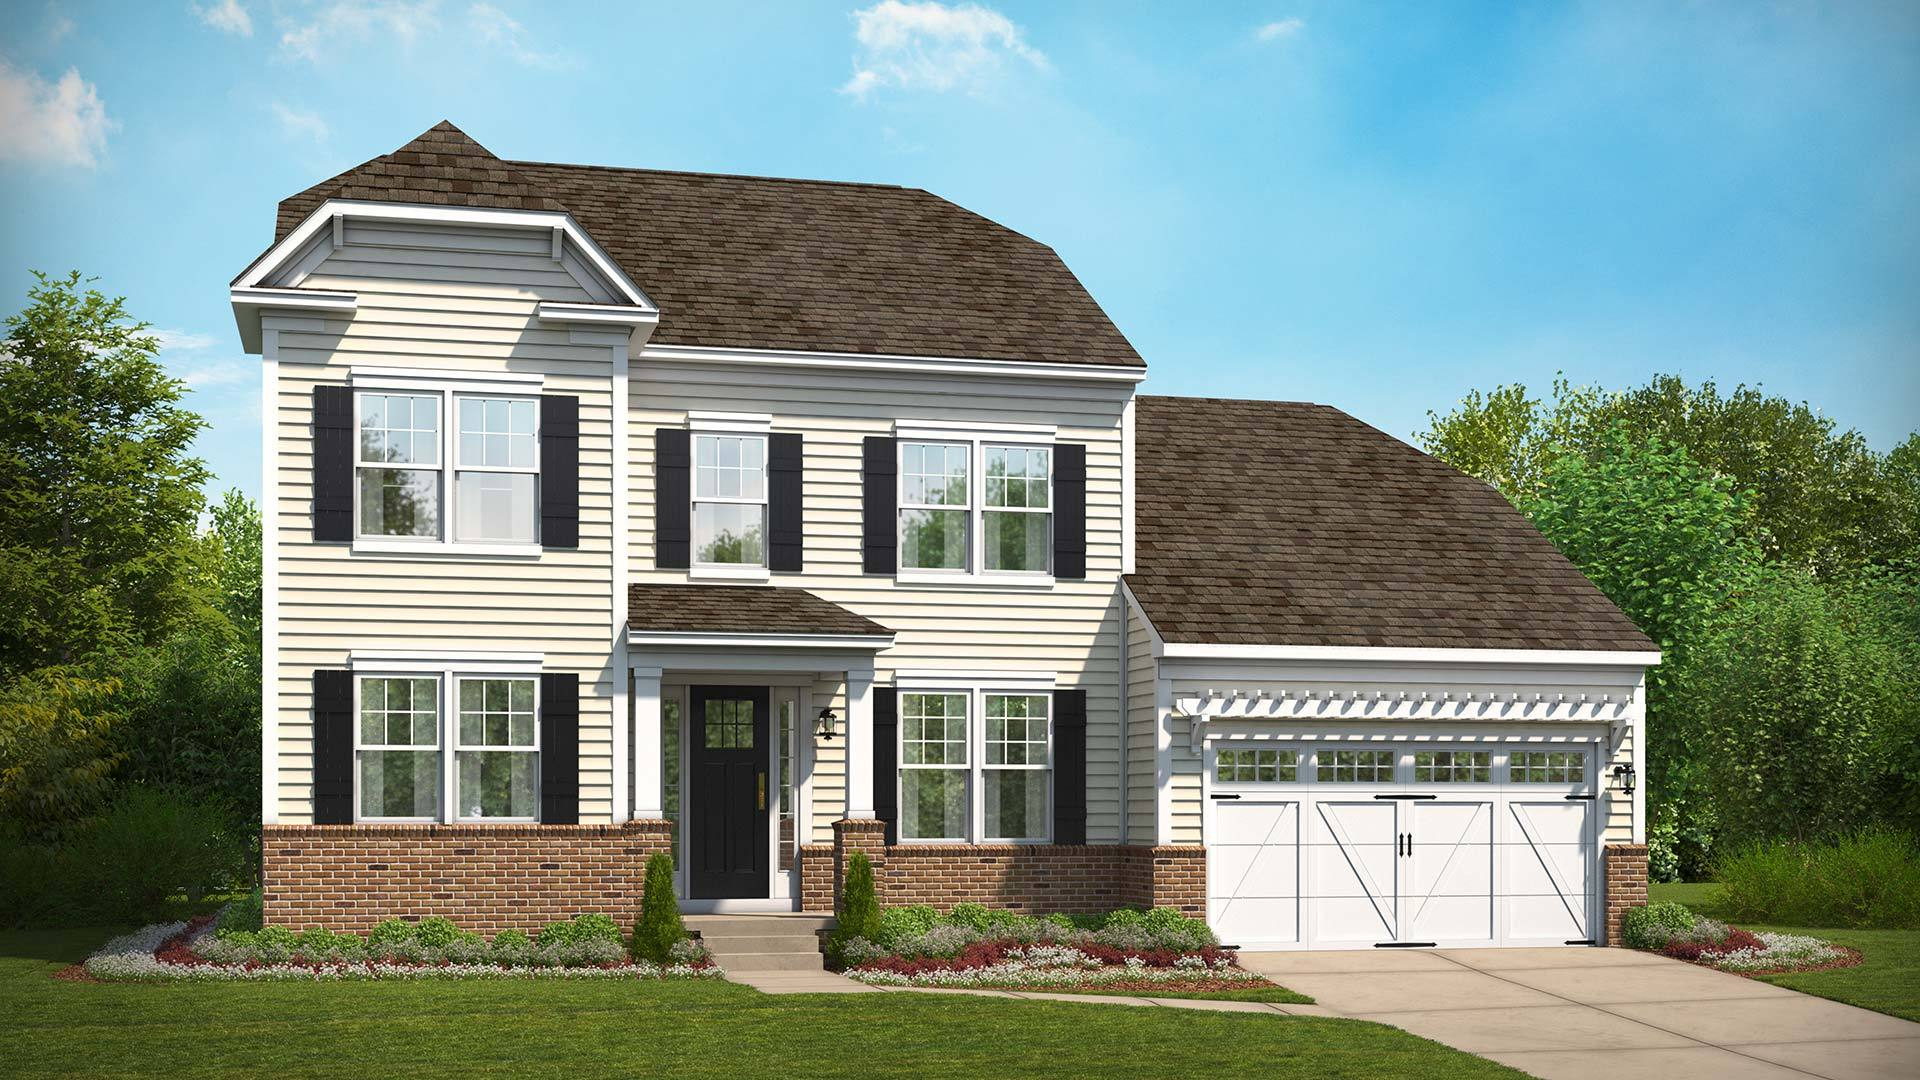 Stanley martin homes wildewood toliver 1361329 for Modern homes for sale in maryland